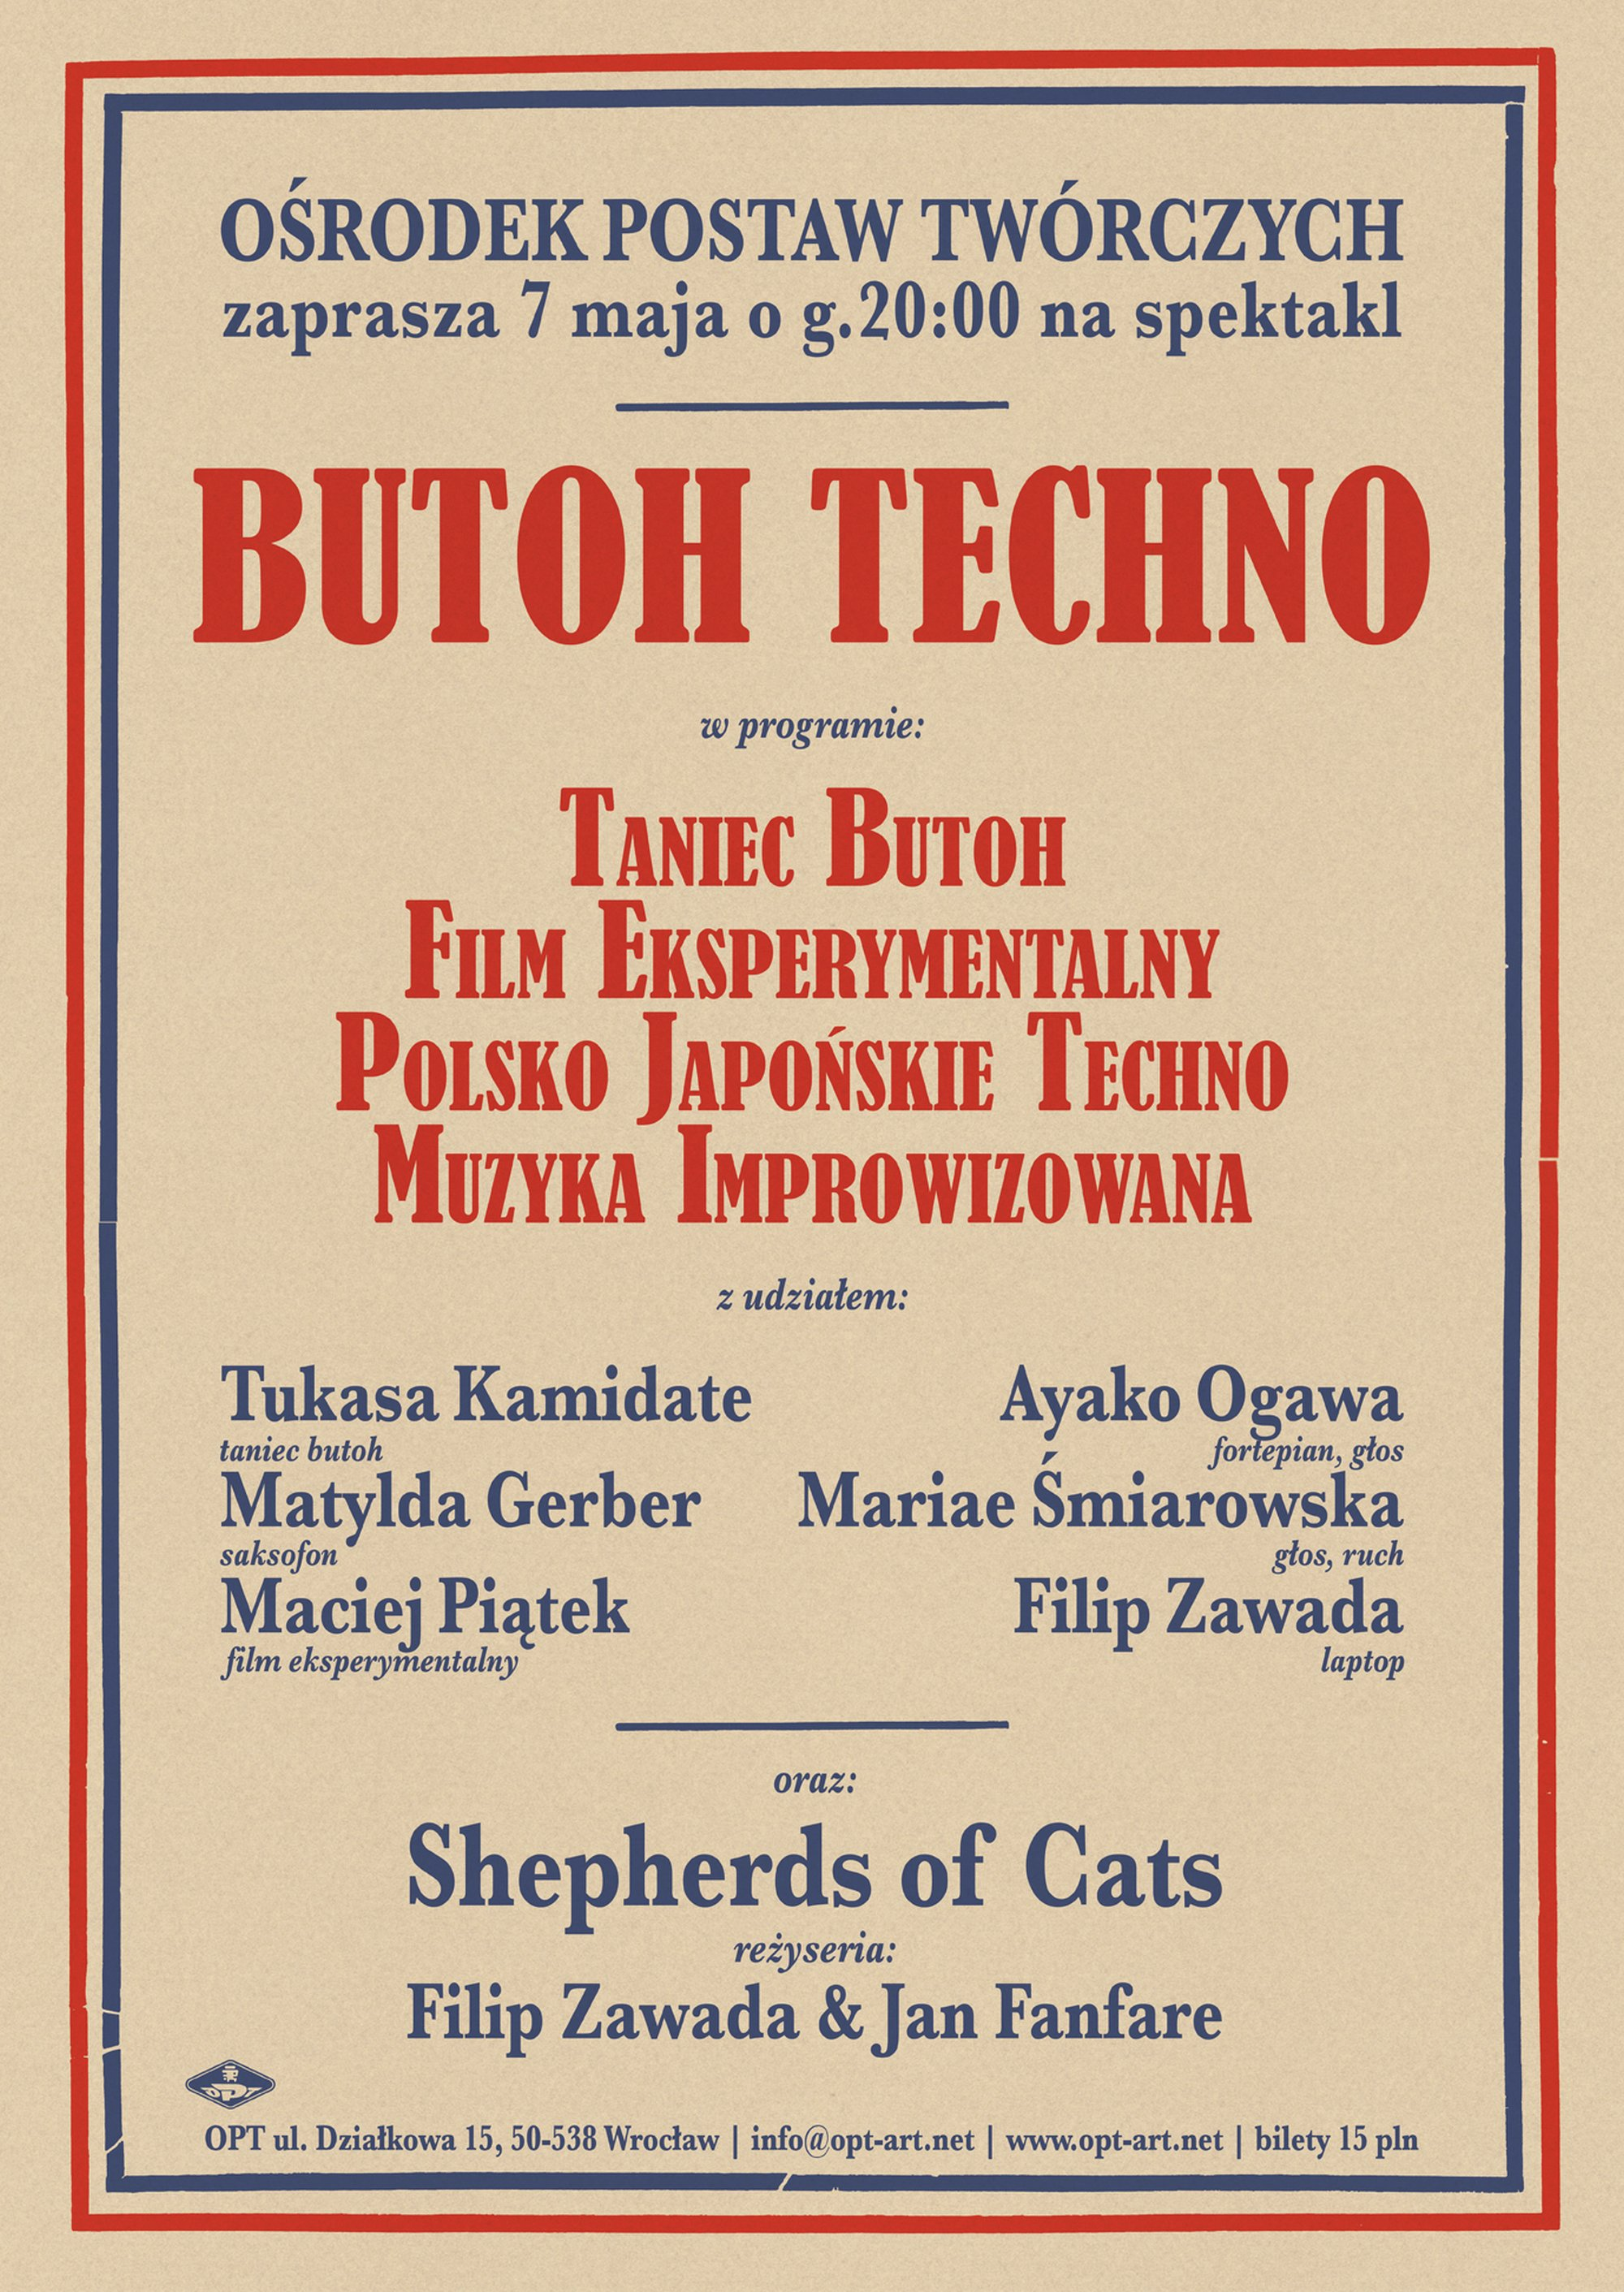 Butoh Techno – audiovisual performance